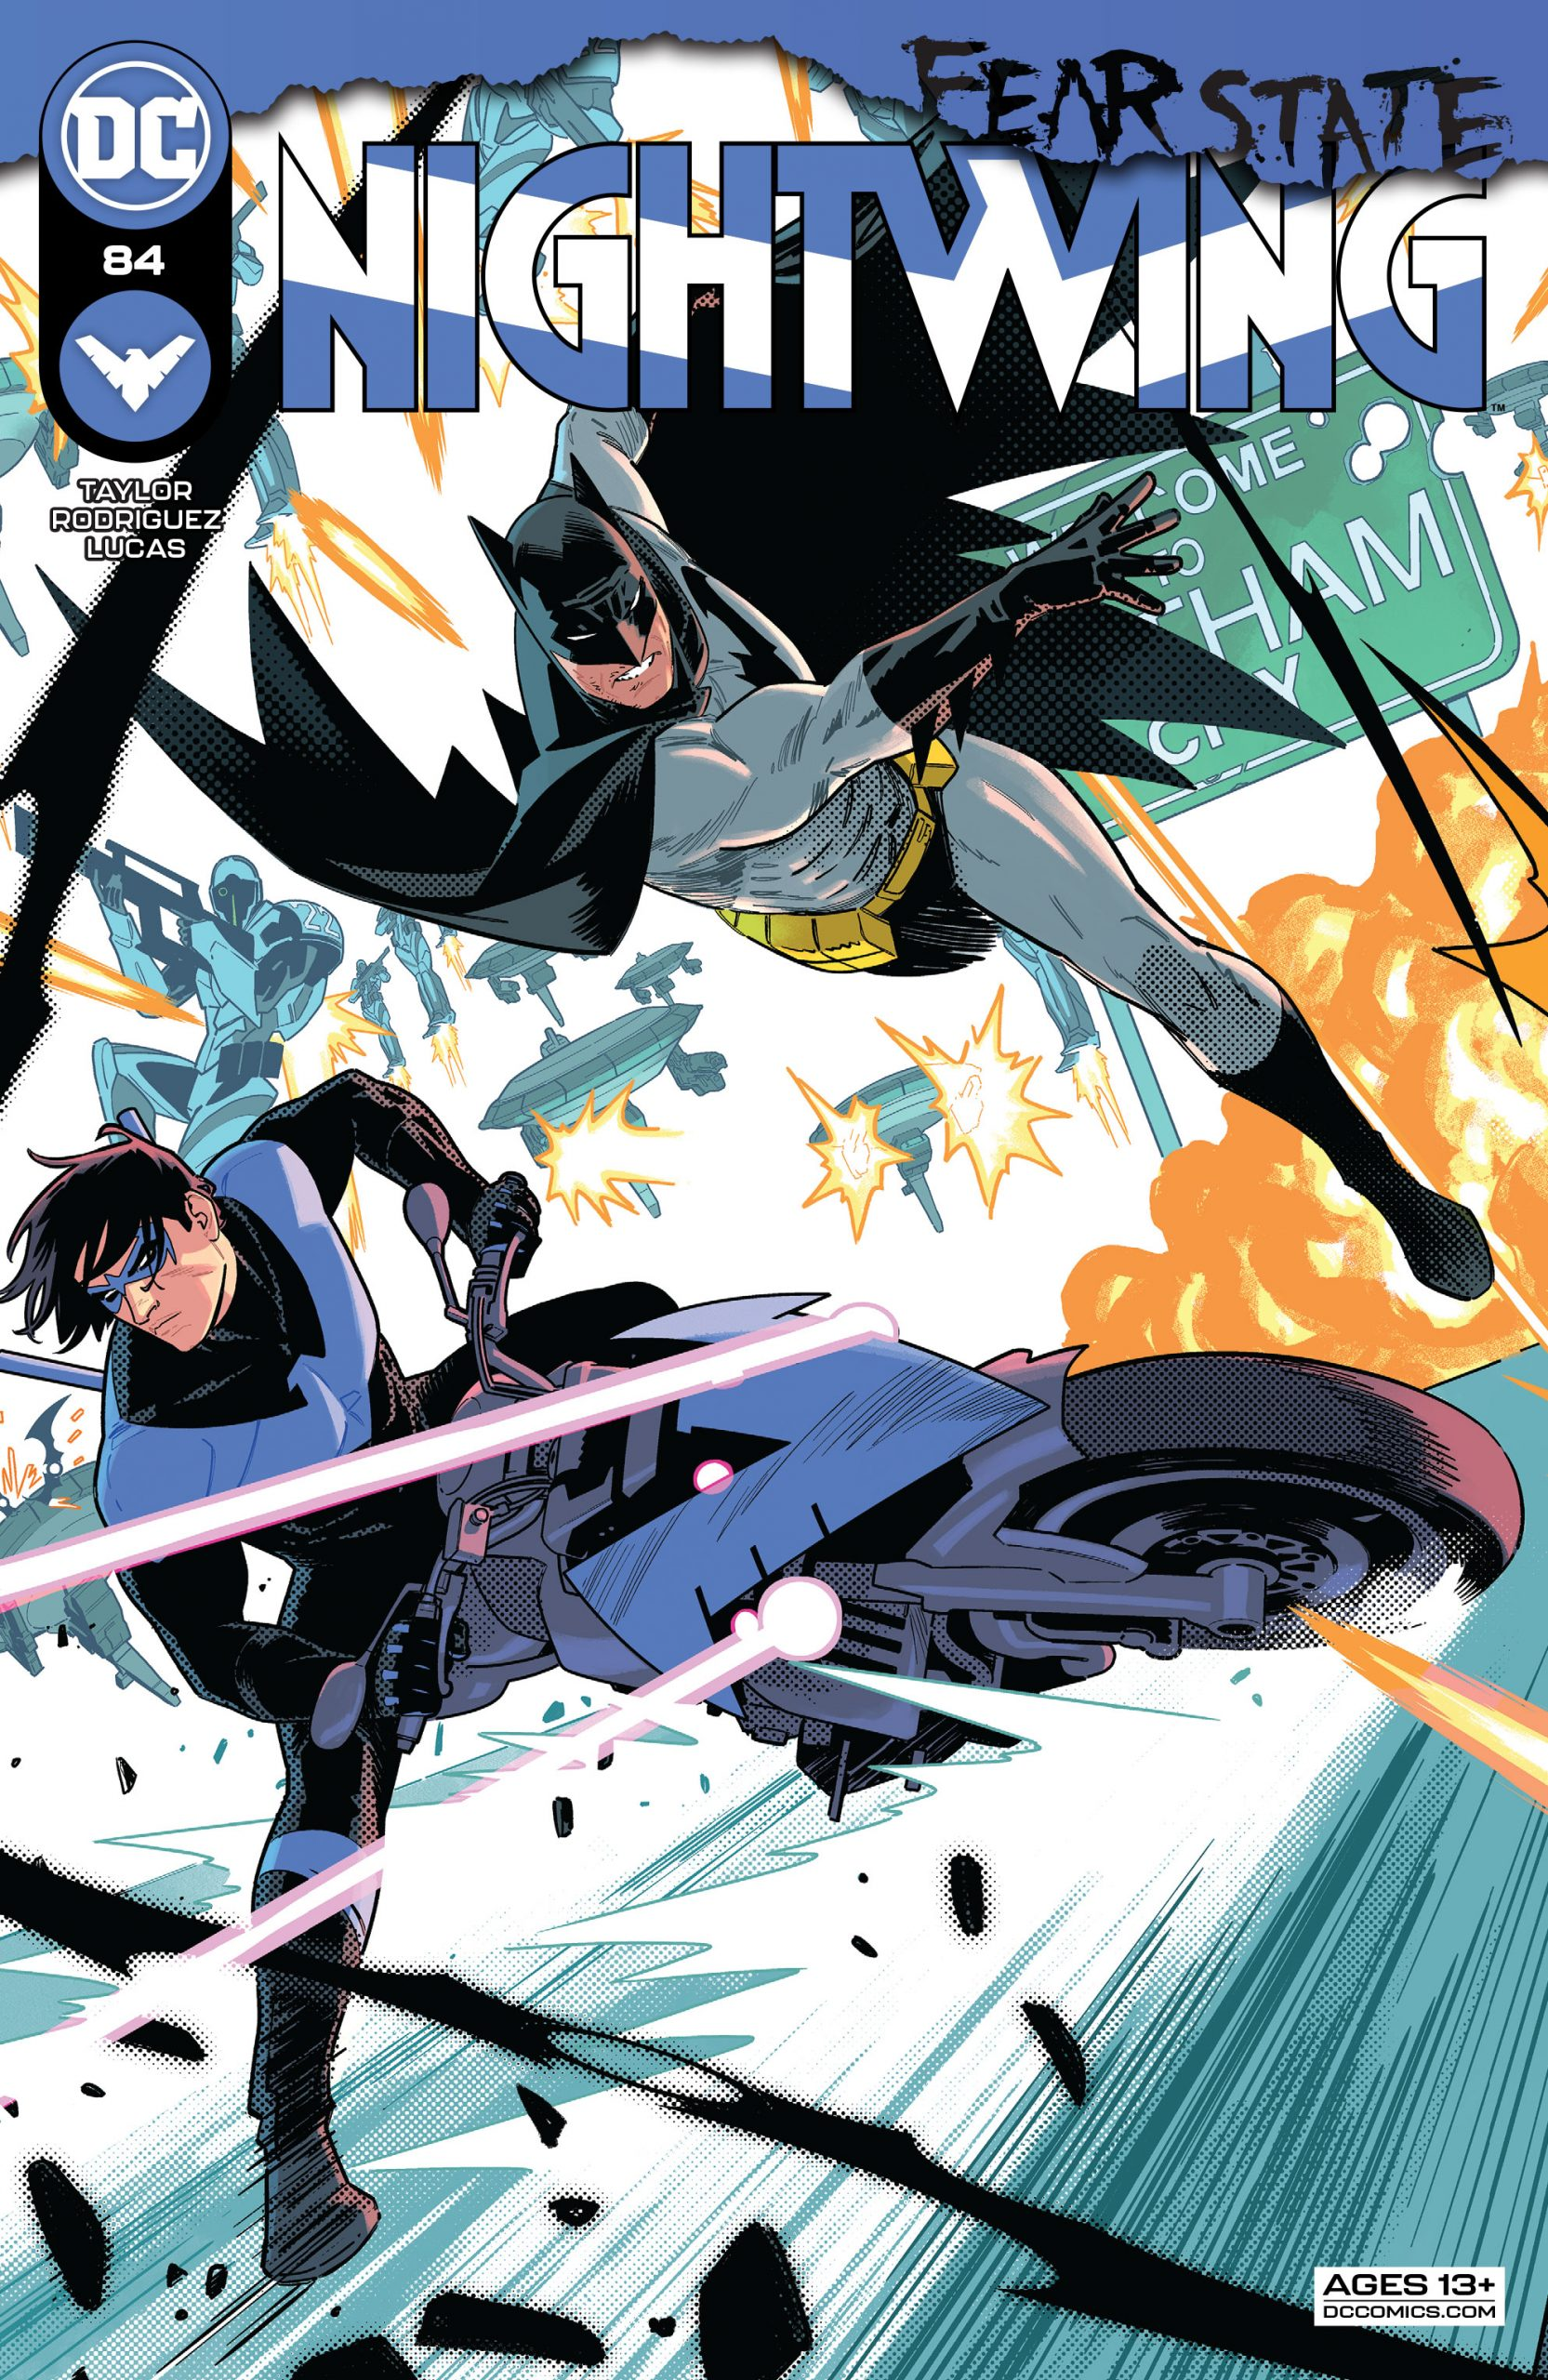 DC Preview: Nightwing #84